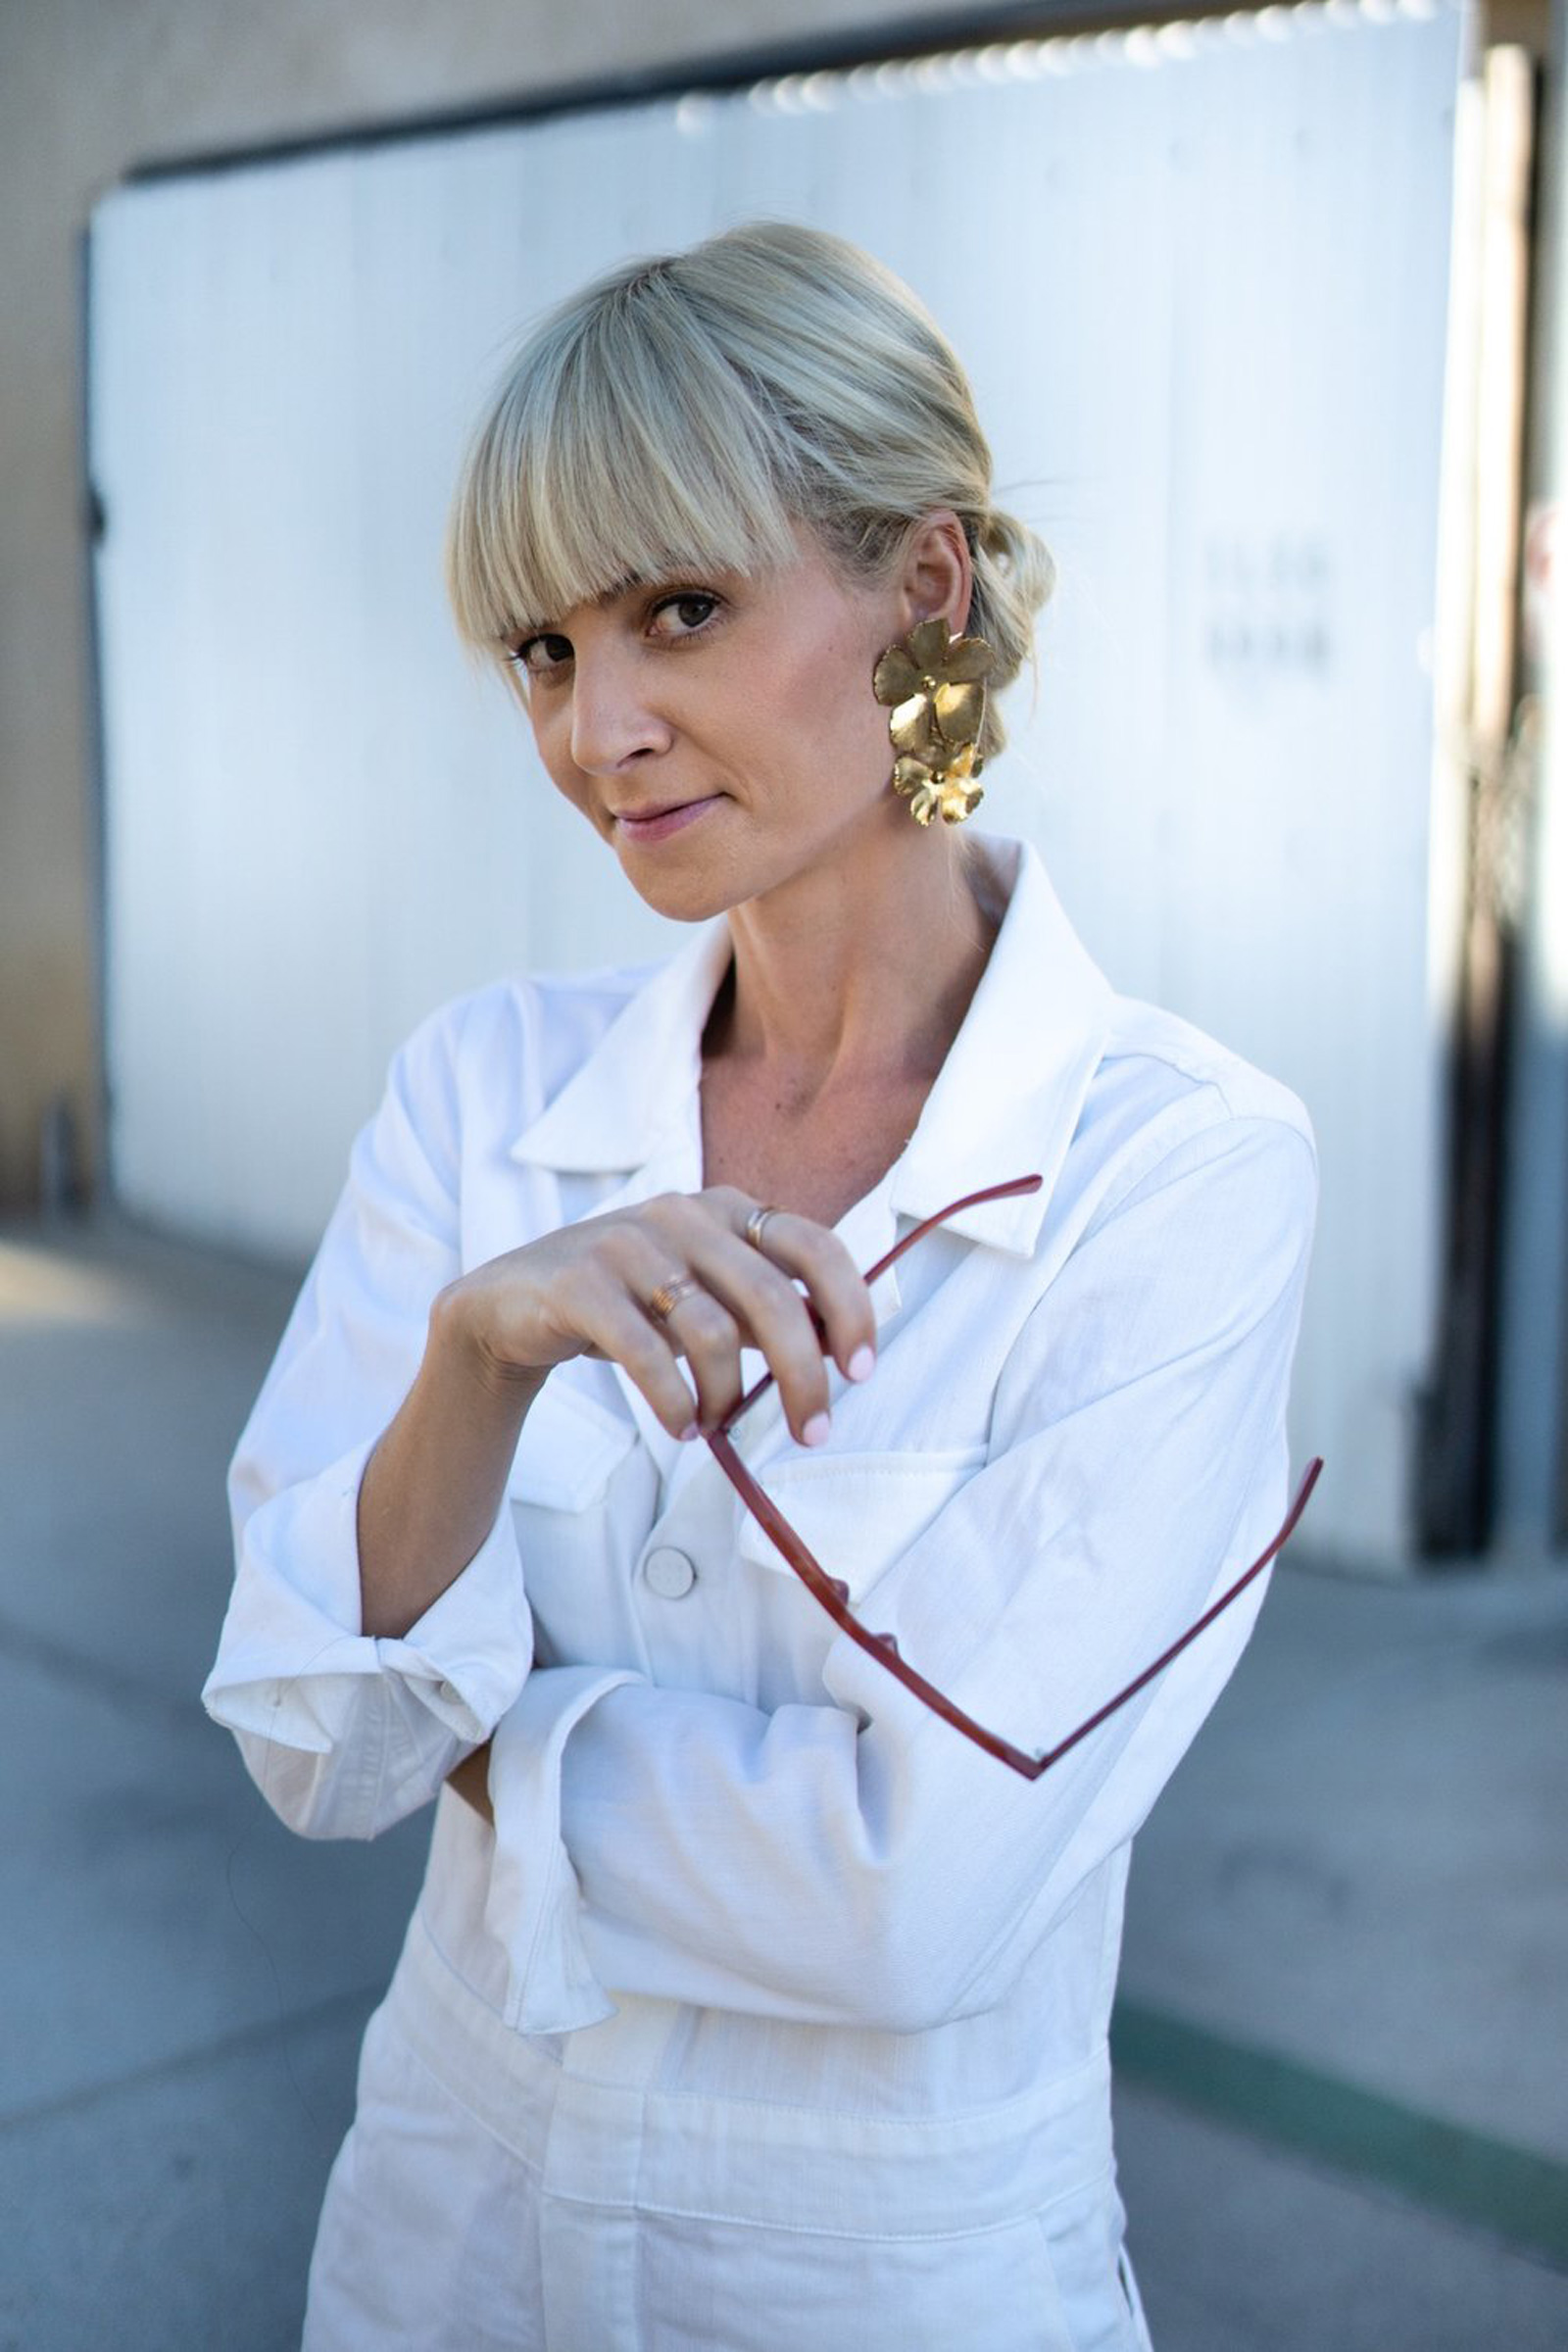 photo of Kestrel Jenkins, a blonde, white woman and host of Conscious Chatter, wearing a white shirt and large gold earrings, standing outside and holding a pair of glasses